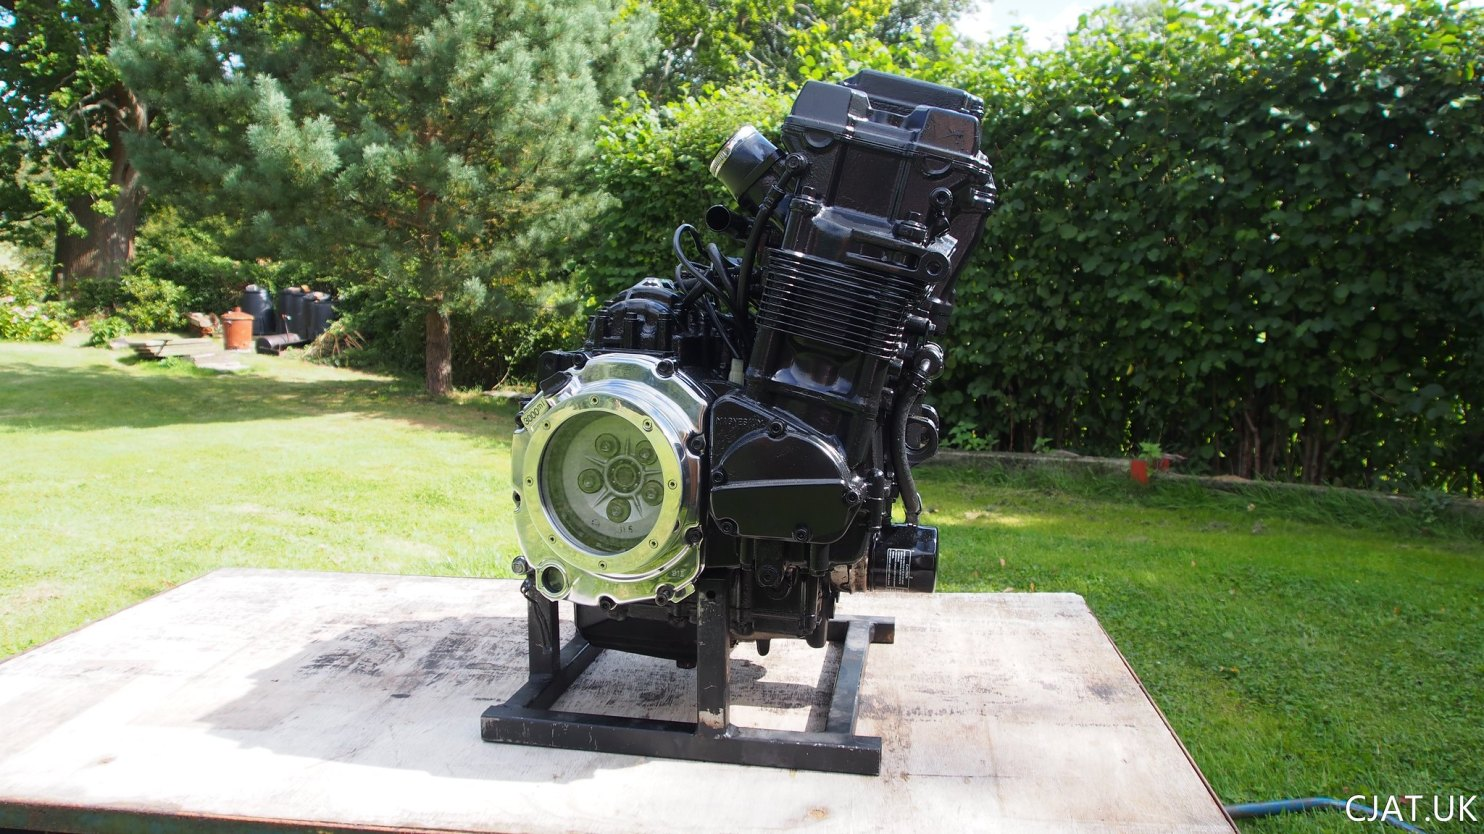 26. Engine Update – Repaired, Painted & Improved